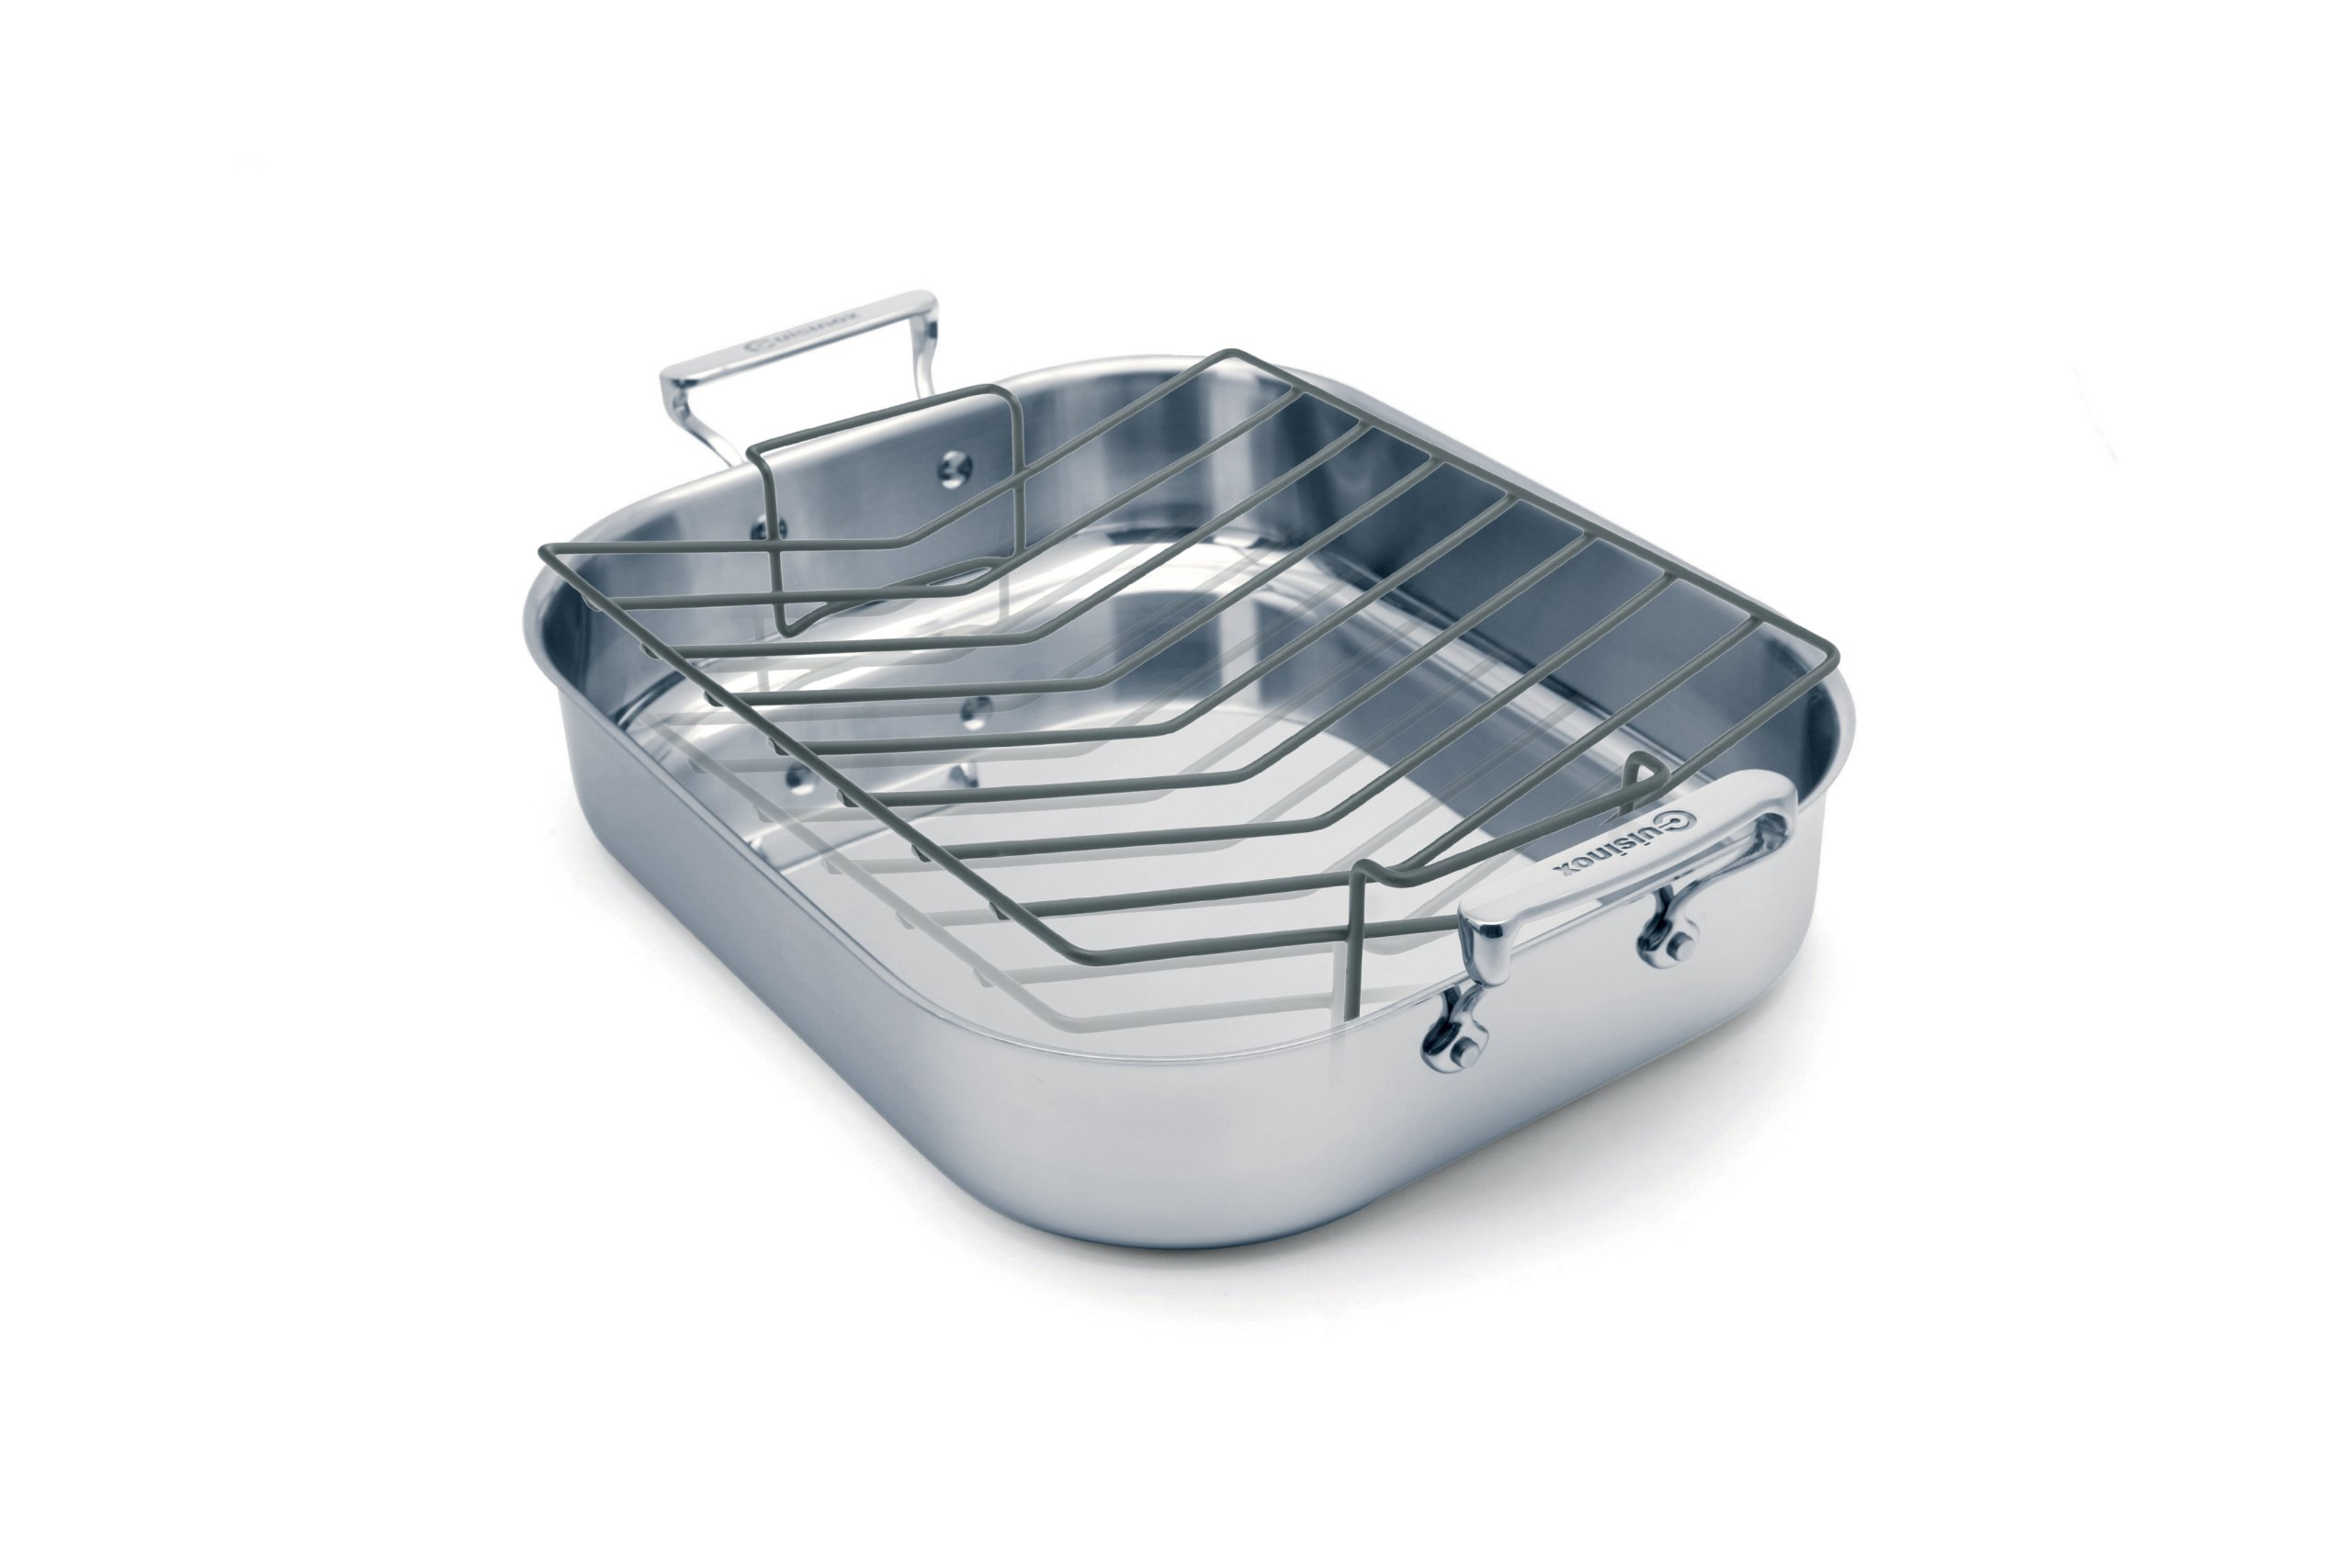 Cuisinox POT-342RLG Elite Open Roaster Pan with Rack, 42 by 35 by 8.5cm